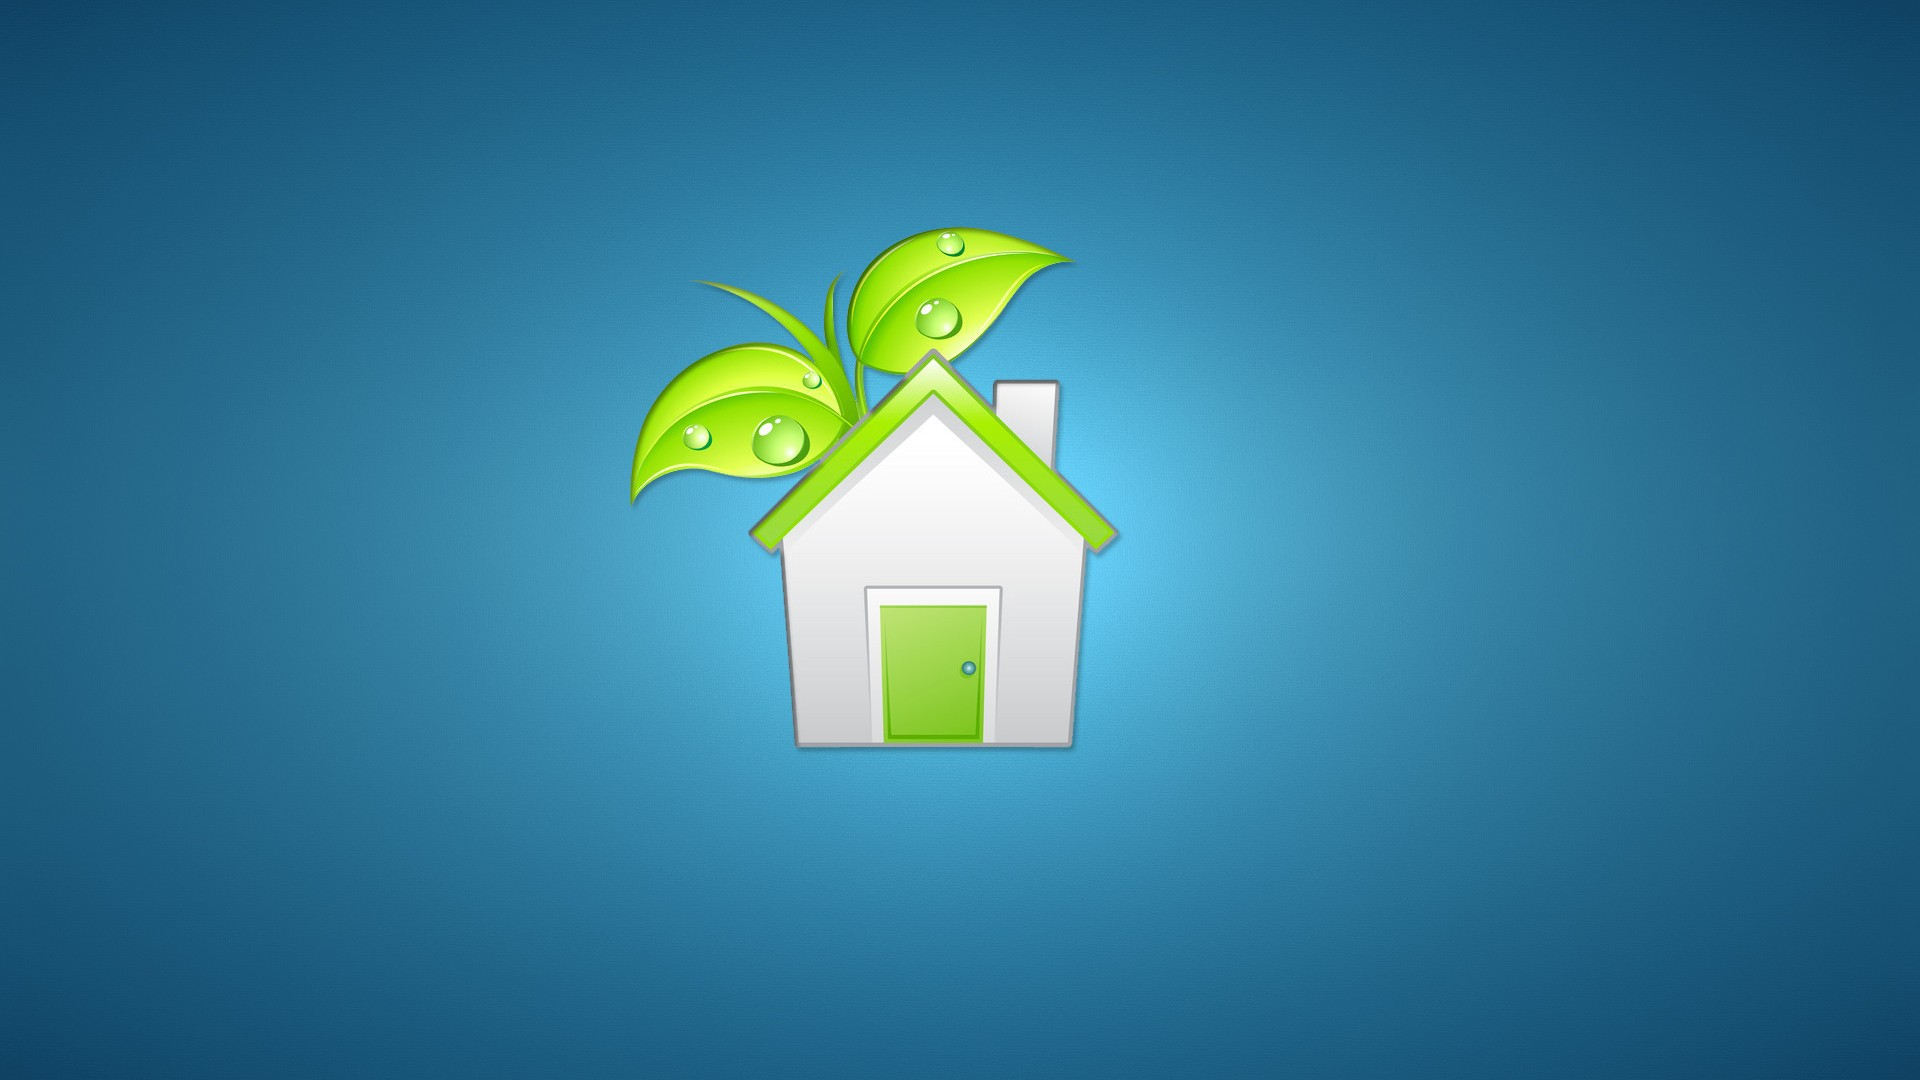 Eco house logo wallpapers and images   wallpapers pictures photos 1920x1080